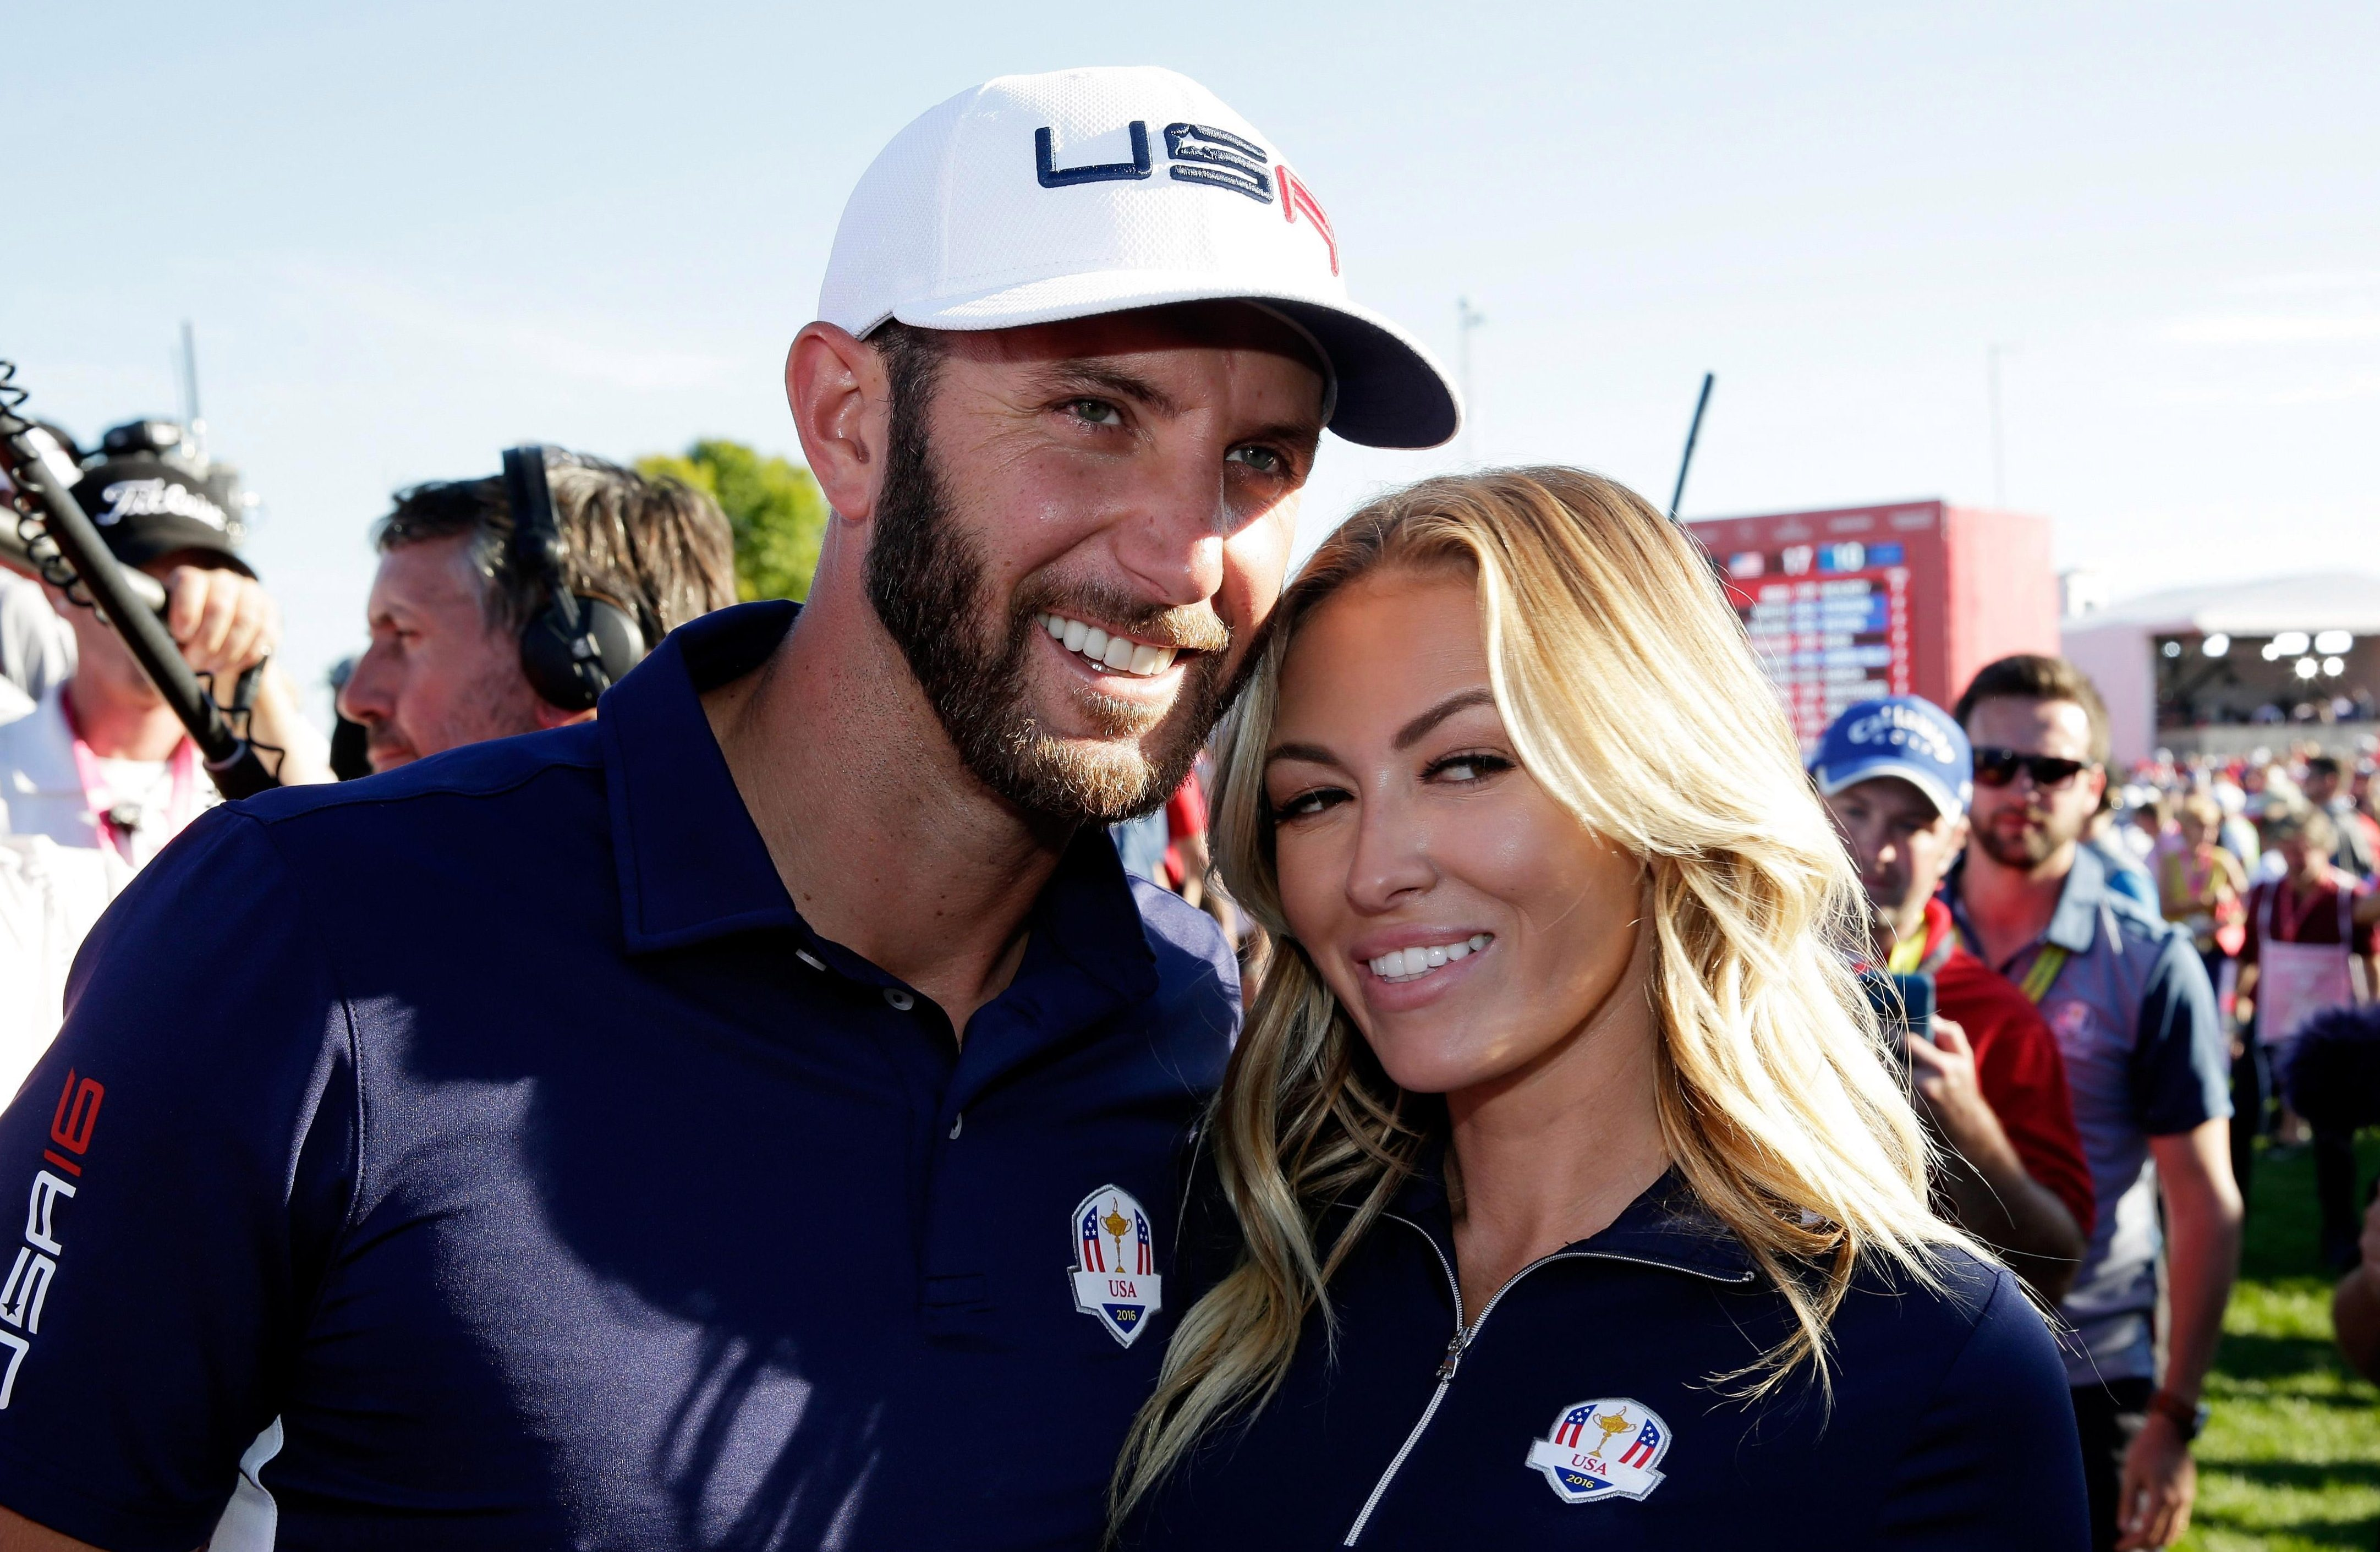 Johnson and Gretzky were the superstar couple at the last Ryder Cup in 2016